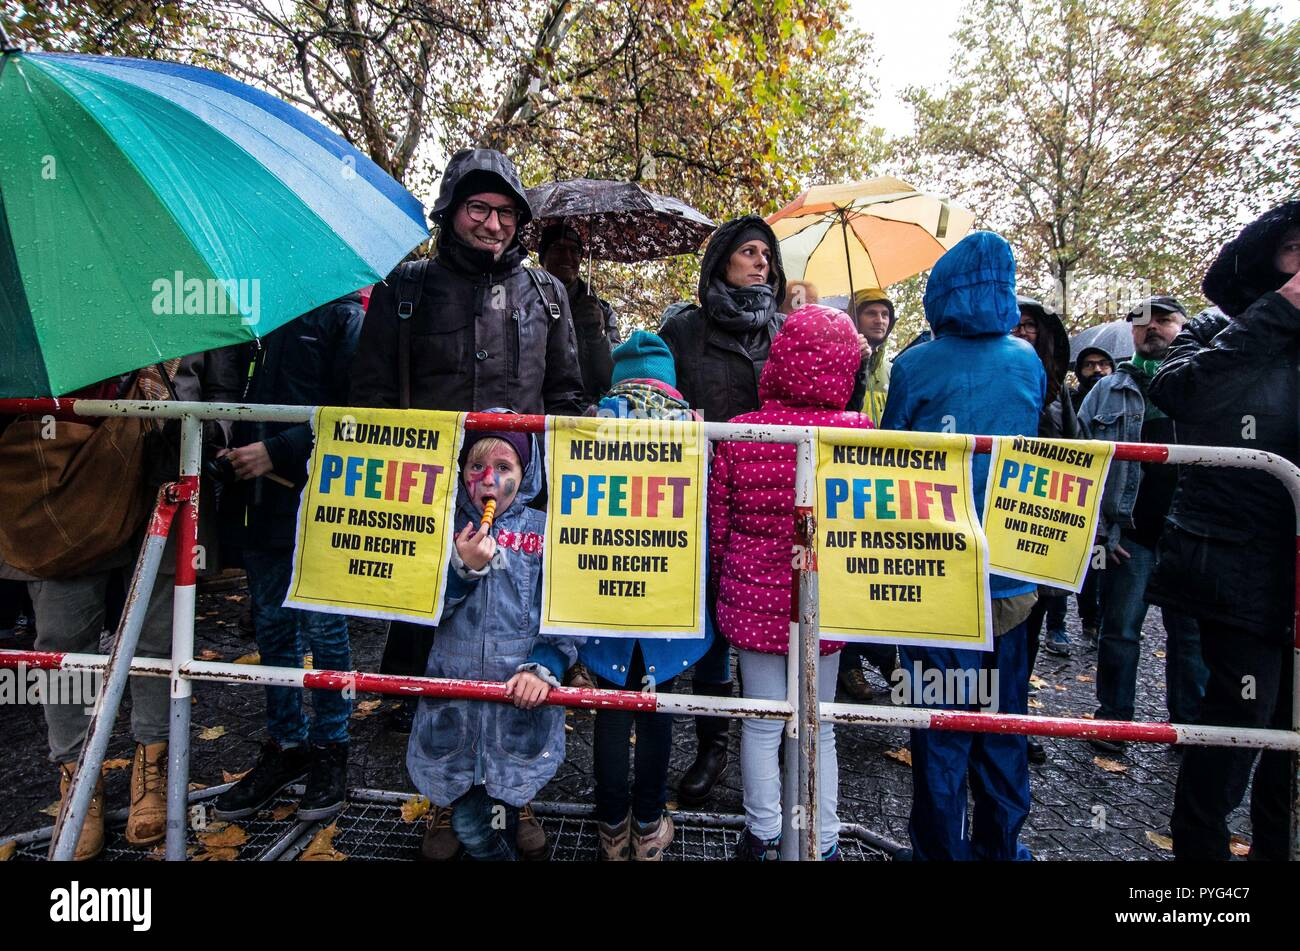 """Munich, Bavaria, Germany. 27th Oct, 2018. Counter-demonstrators against Pegida. Attempting to draw more followers and expand PEGIDA into Bavaria, """"Pegida Dresden"""""""" announced an appearance by founders LUTZ BACHMANN and SIEGFRIED DAEBRITZ in Munich's Neuhausen district. Ultimately, the two did not arrive, leaving approximately 40 Pegida followers to march against over 450 counter-demonstrators. Pegida Dresden in Munich is actually Pegida Nuremburg who is attempting to expand south to Munich where the rival Pegida Muenchen is already active. The latter group is more closely associated Stock Photo"""